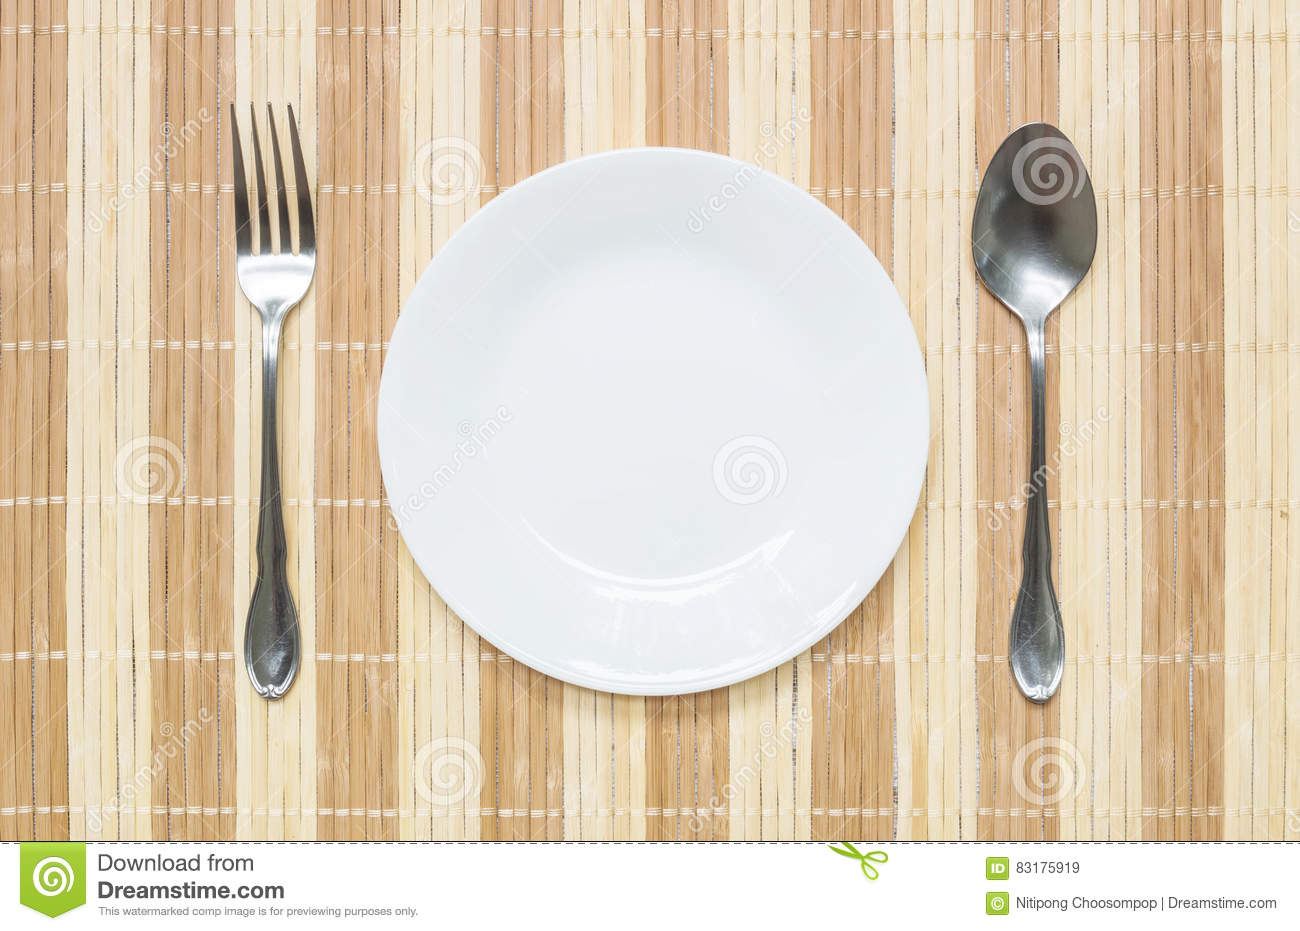 Kitchen table top view - Closeup White Ceramic Dish With Stainless Fork And Spoon On Wood Mat Textured Background On Dining